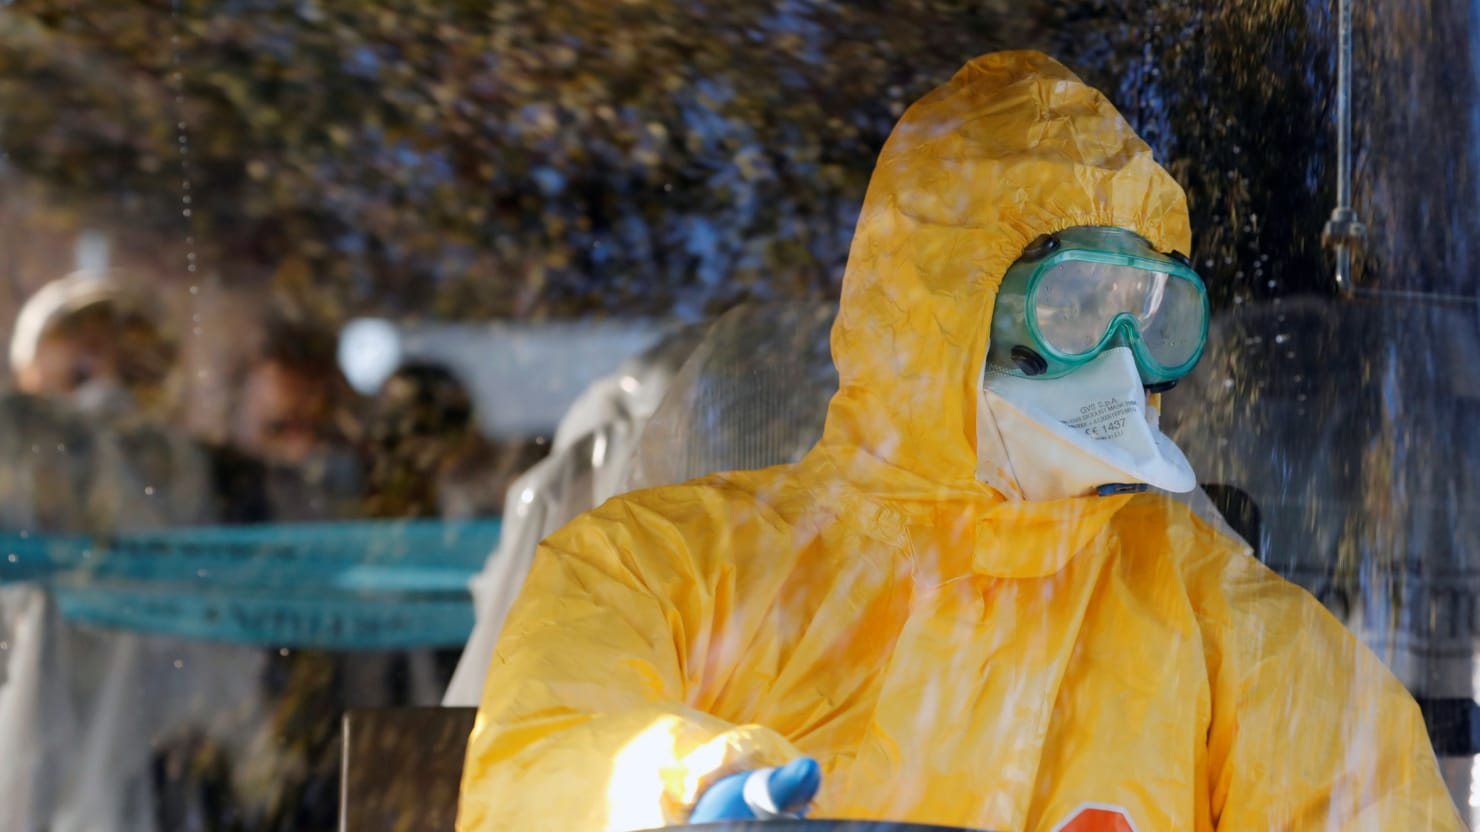 Coronavirus Explodes in Italy, Threatening Europe. Can It Be Contained?